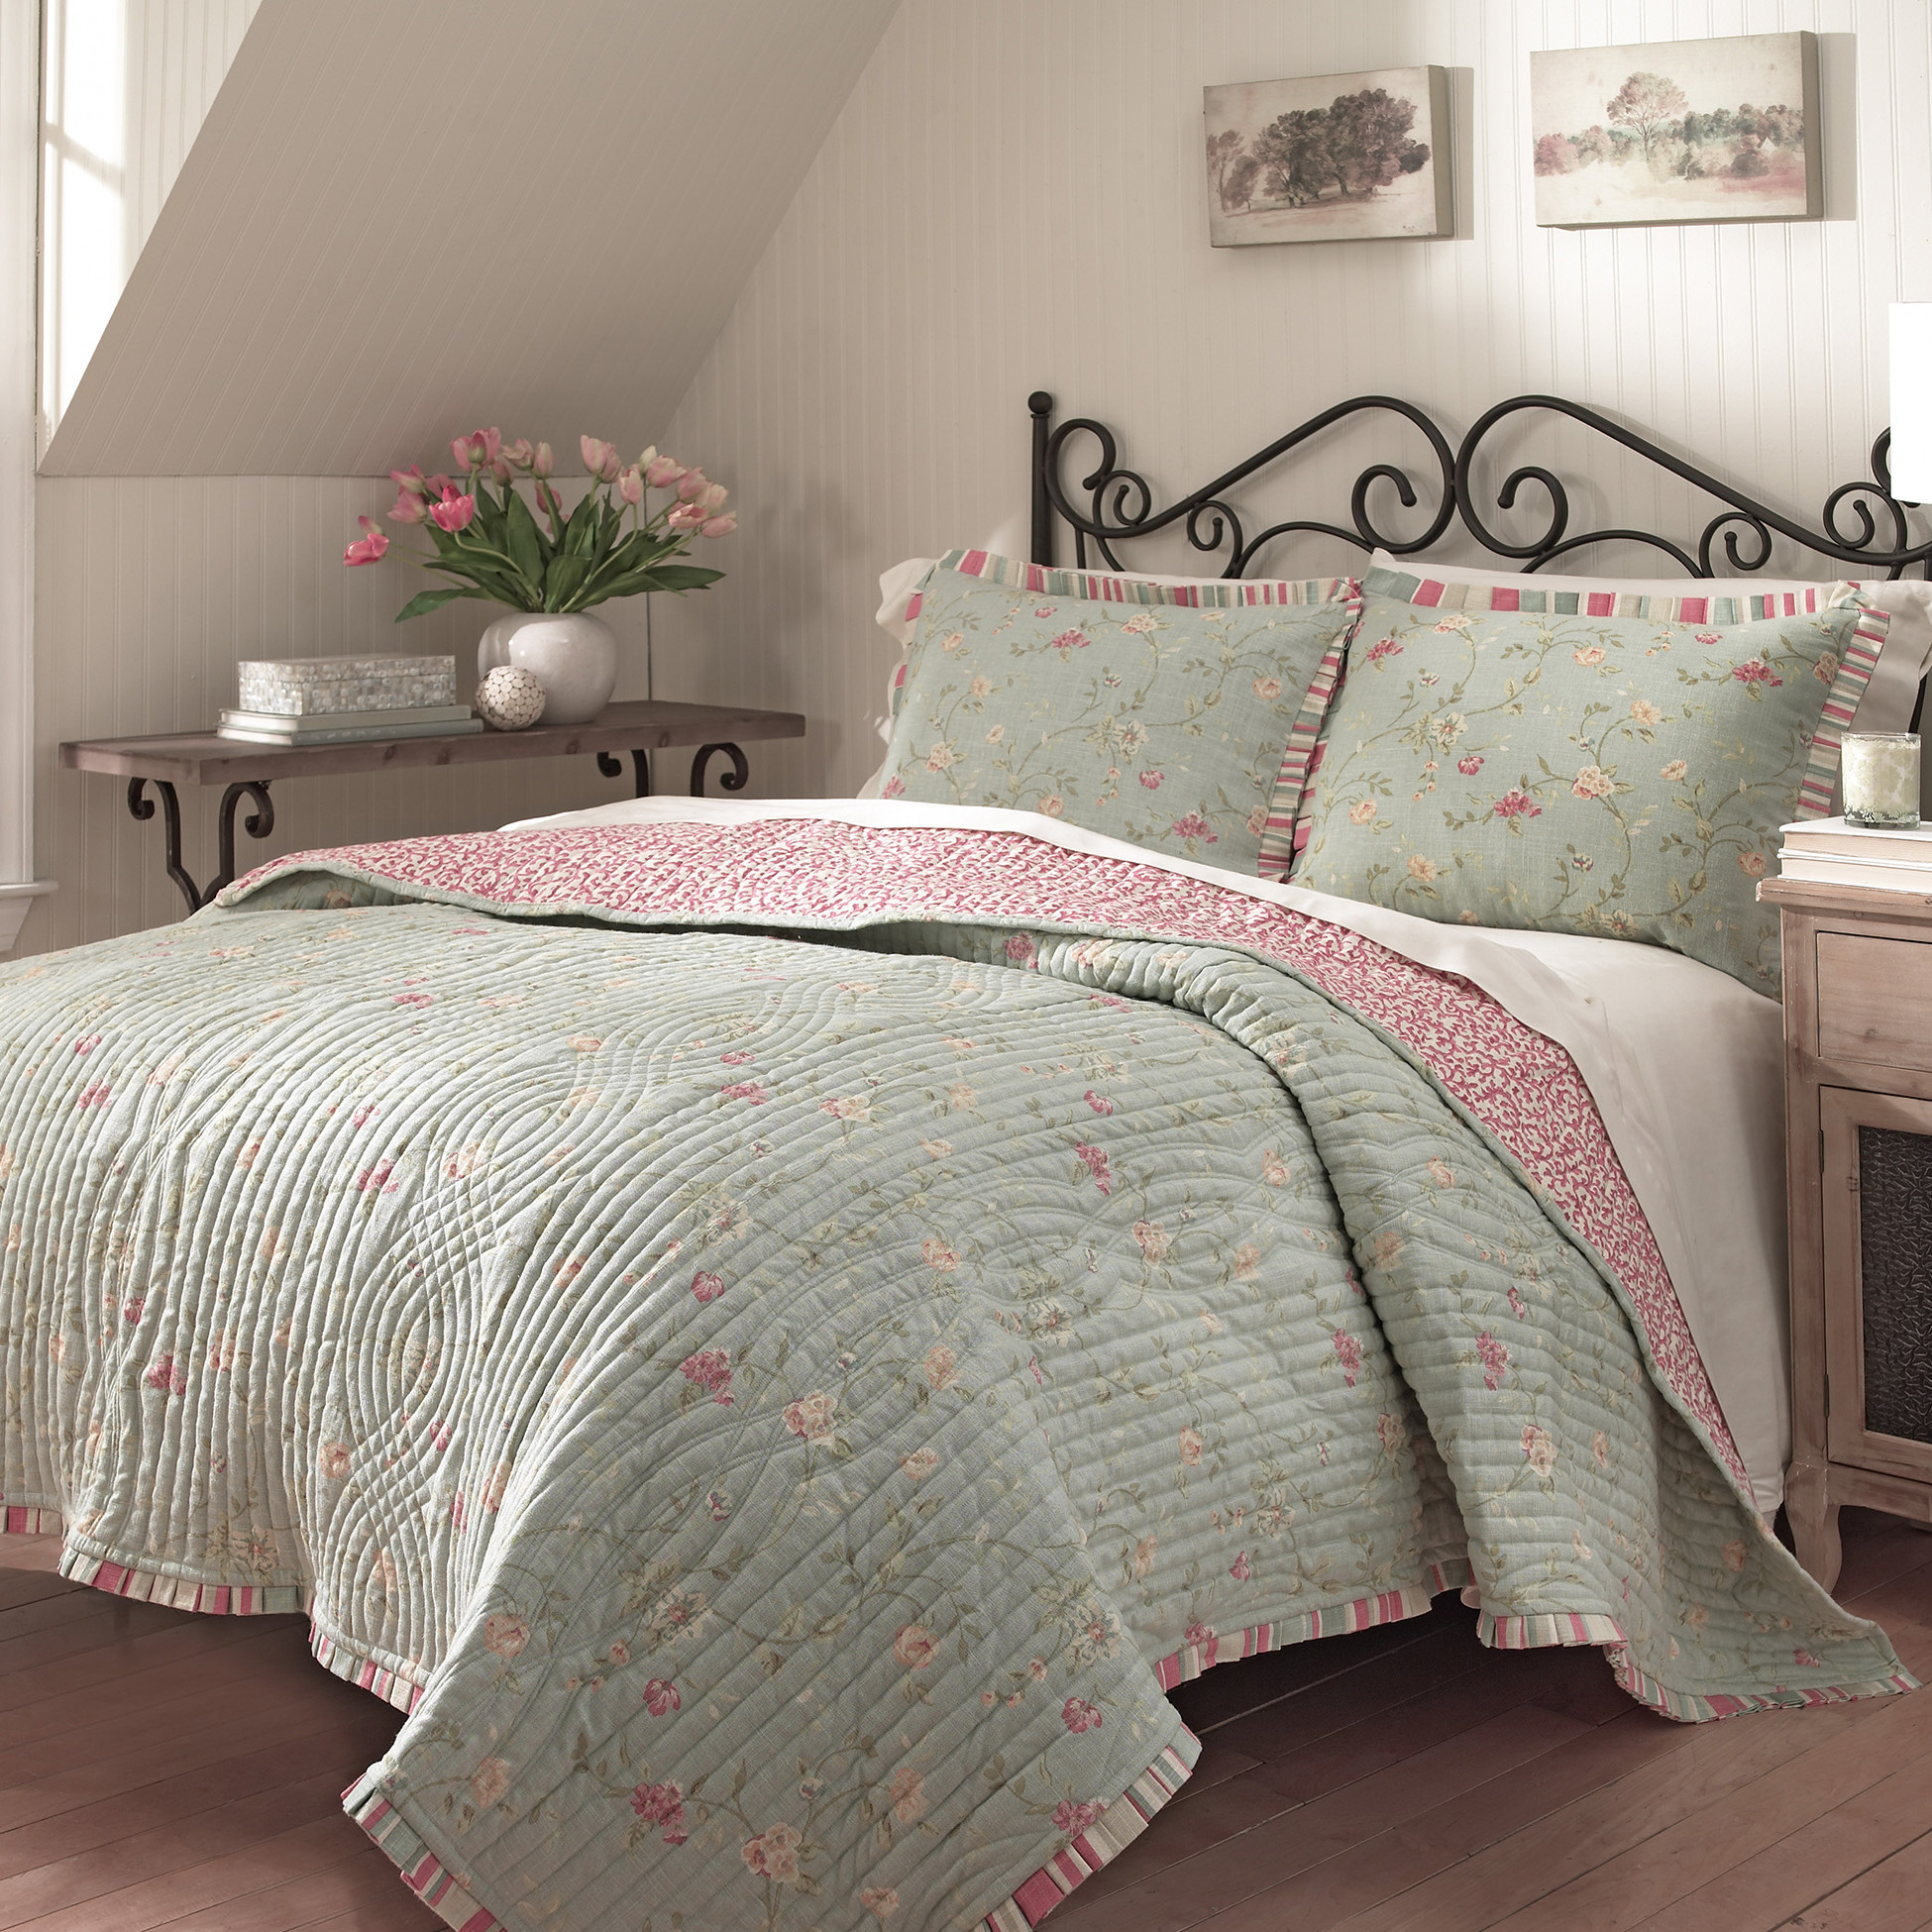 Great coverlets for luxury bedroom ideas with matelasse coverlet